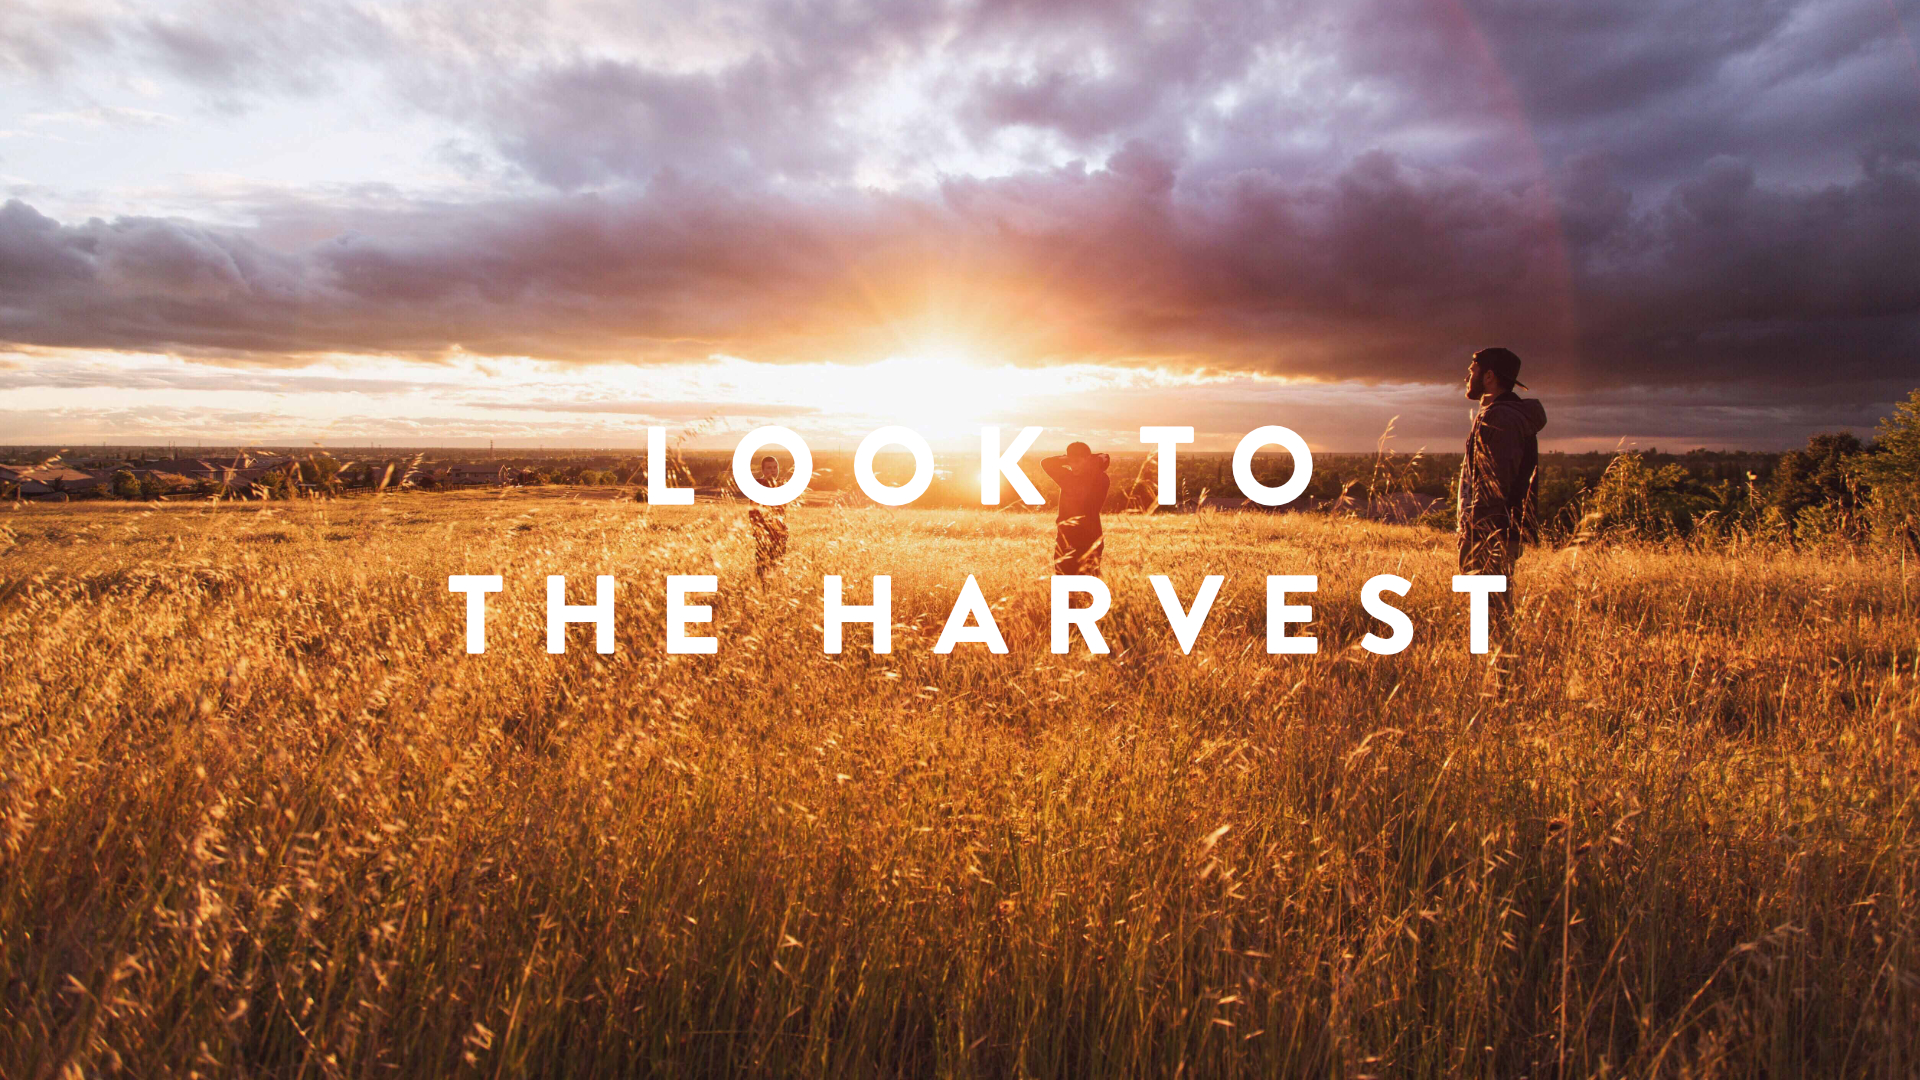 Look To The Harvest.jpg